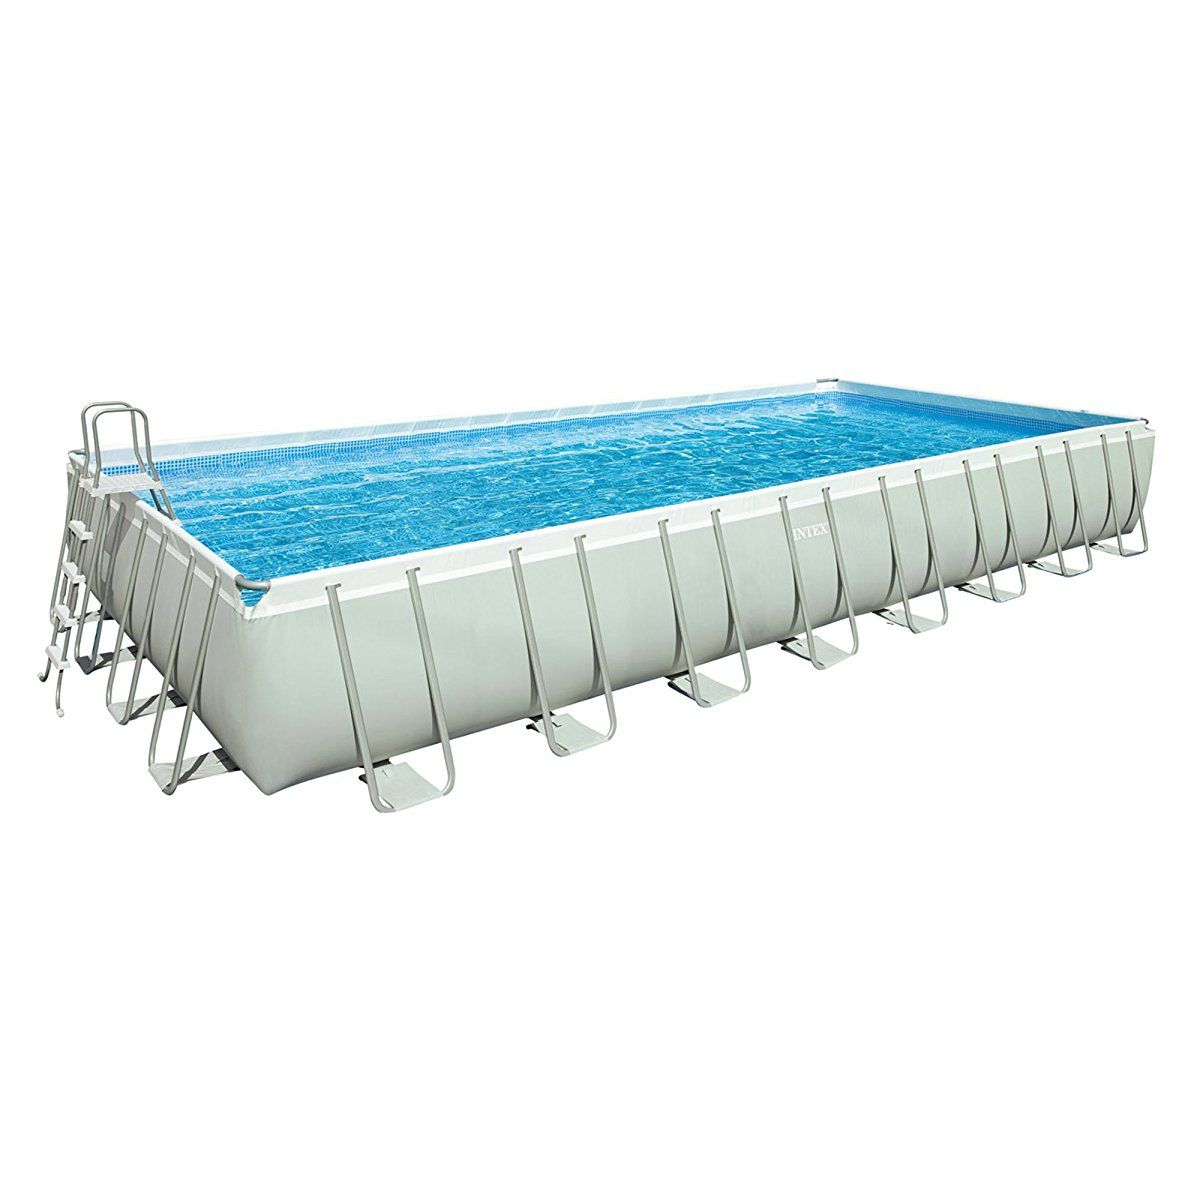 Intex 32ft X 16ft X 52in Ultra Frame Rectangular Pool Set with Sand ...